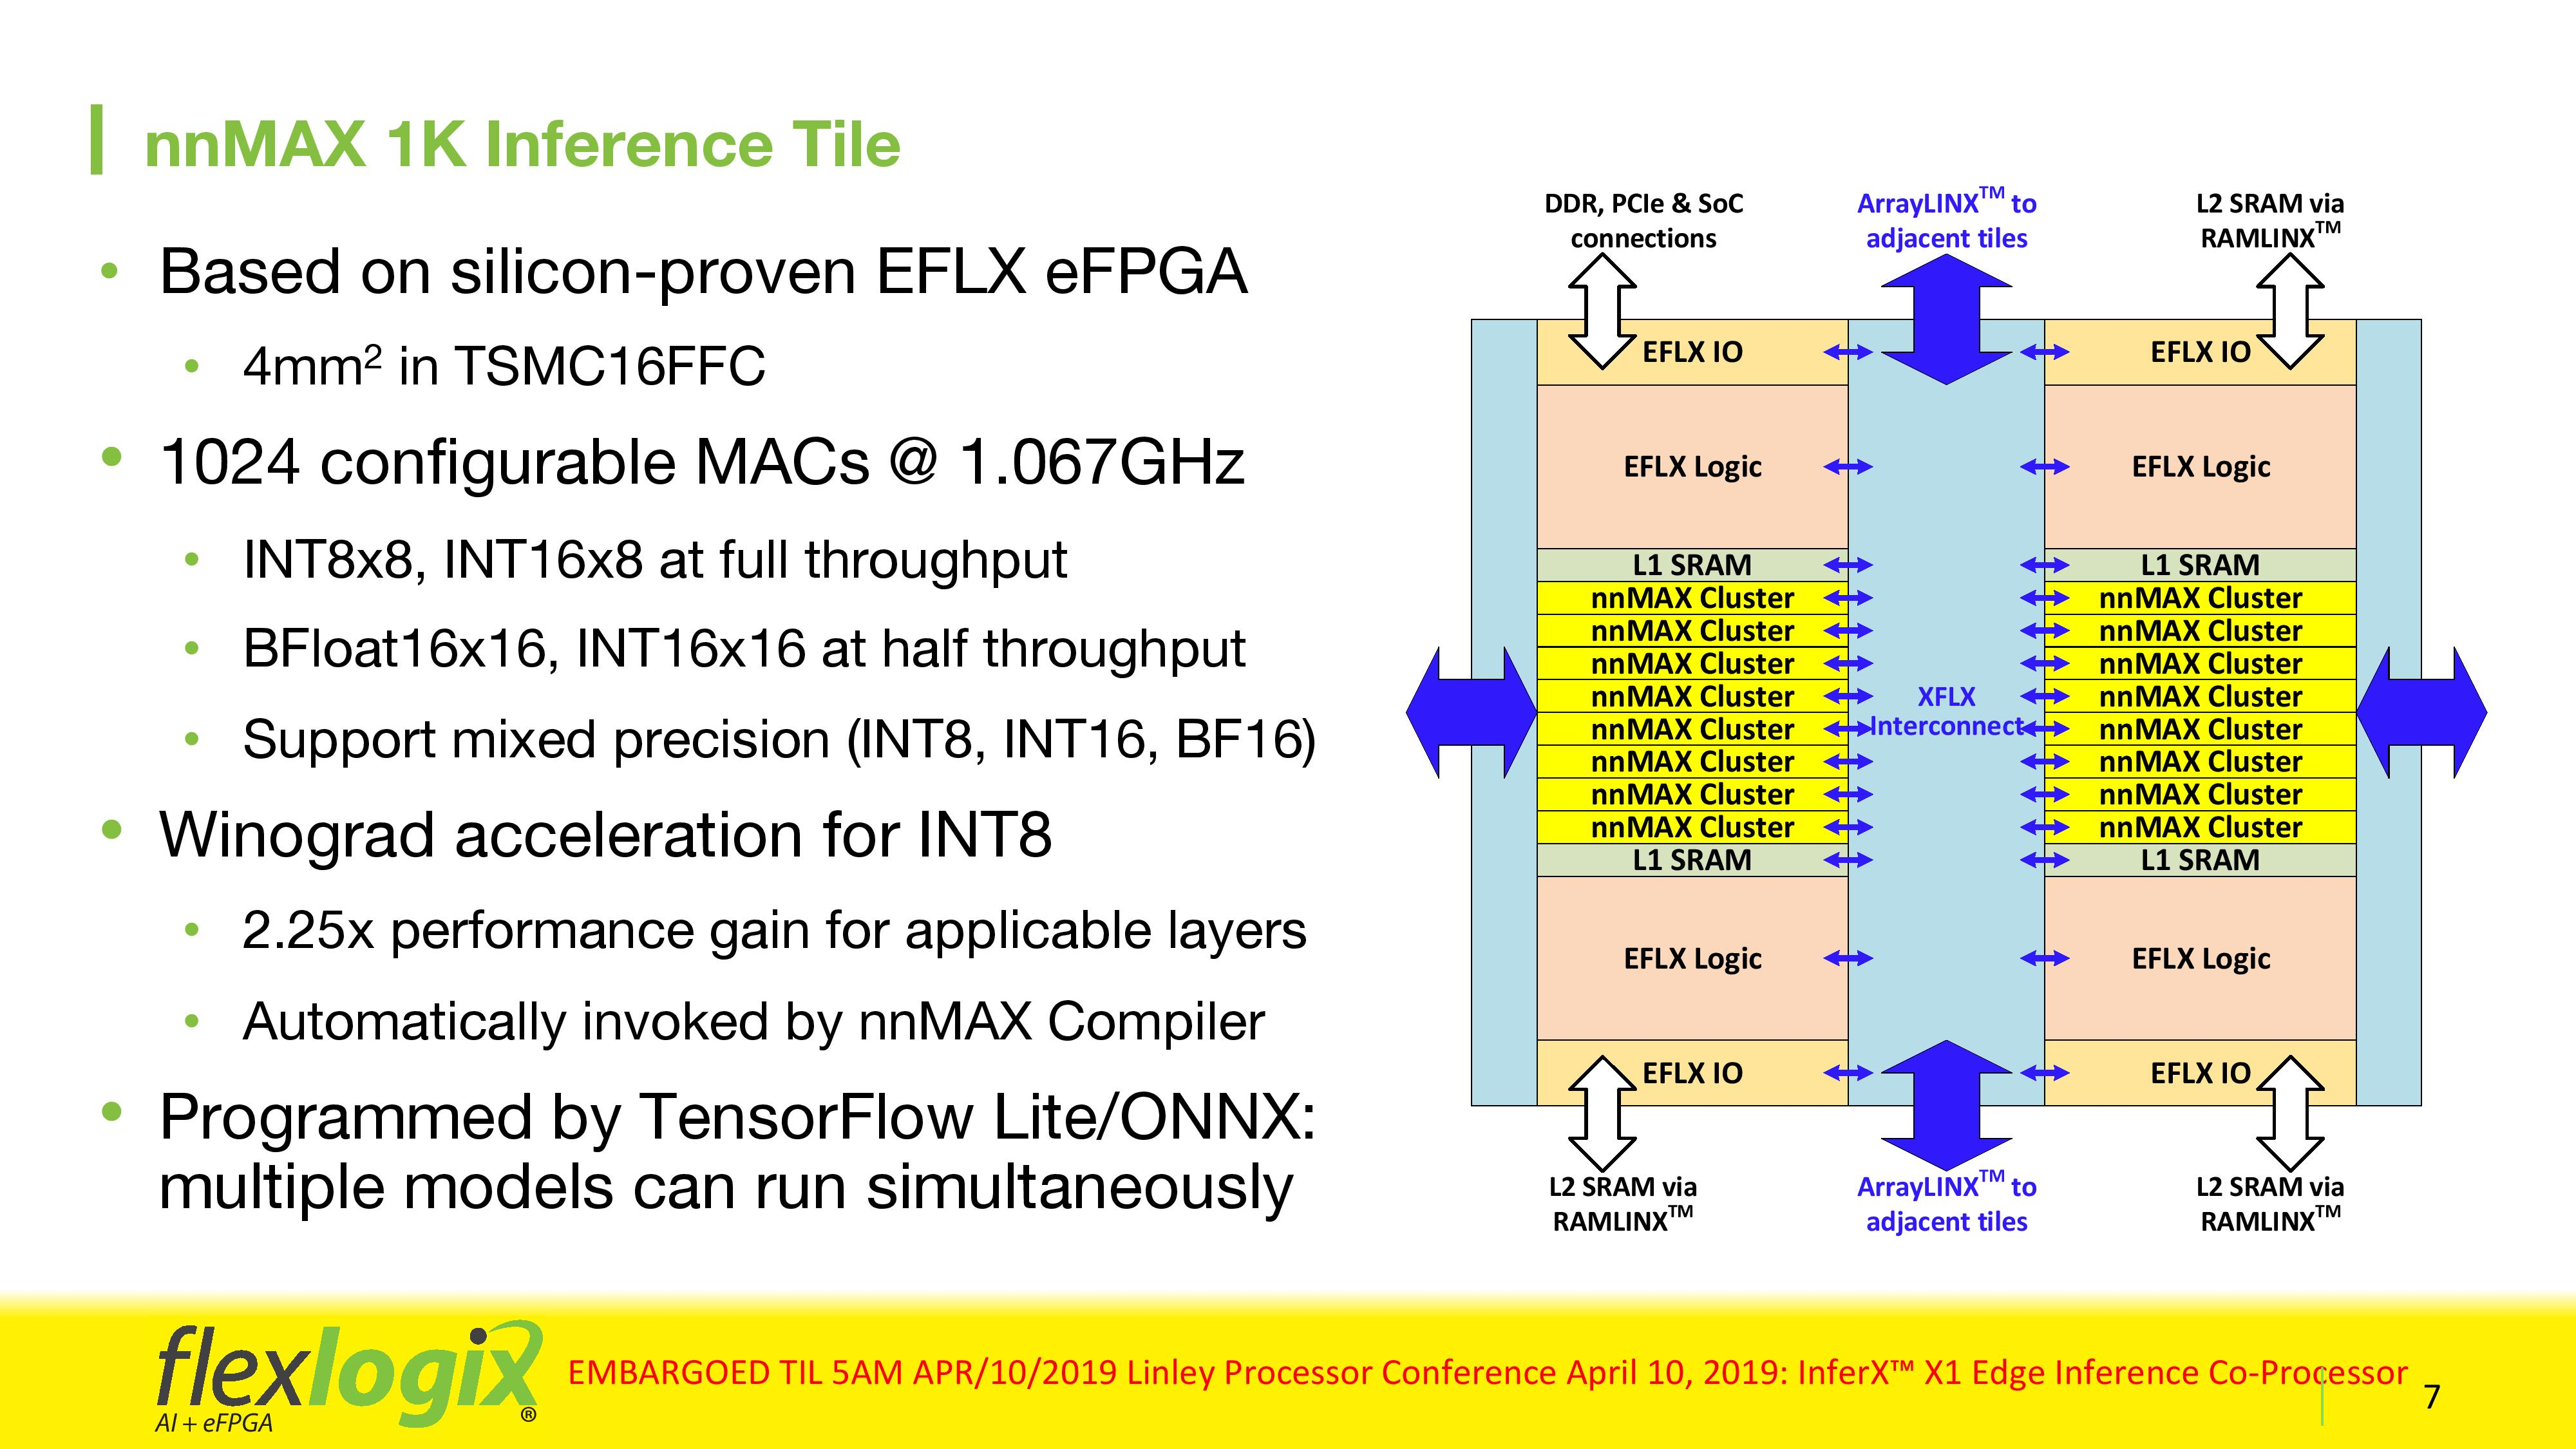 AI On The Edge: New Flex Logix X1 Inference AI Chip For Fanless Designs